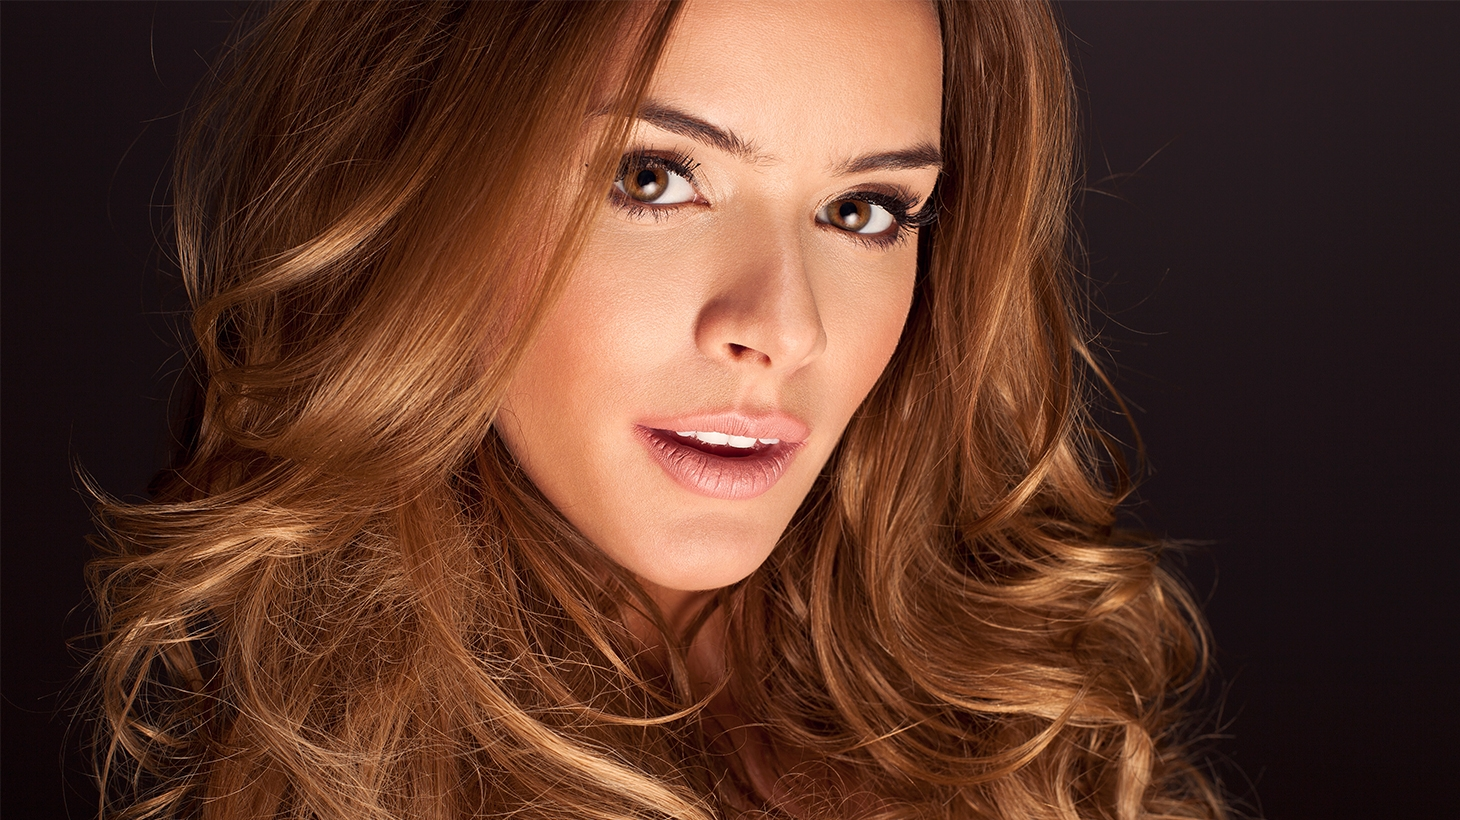 Woman with long wavy brown hair